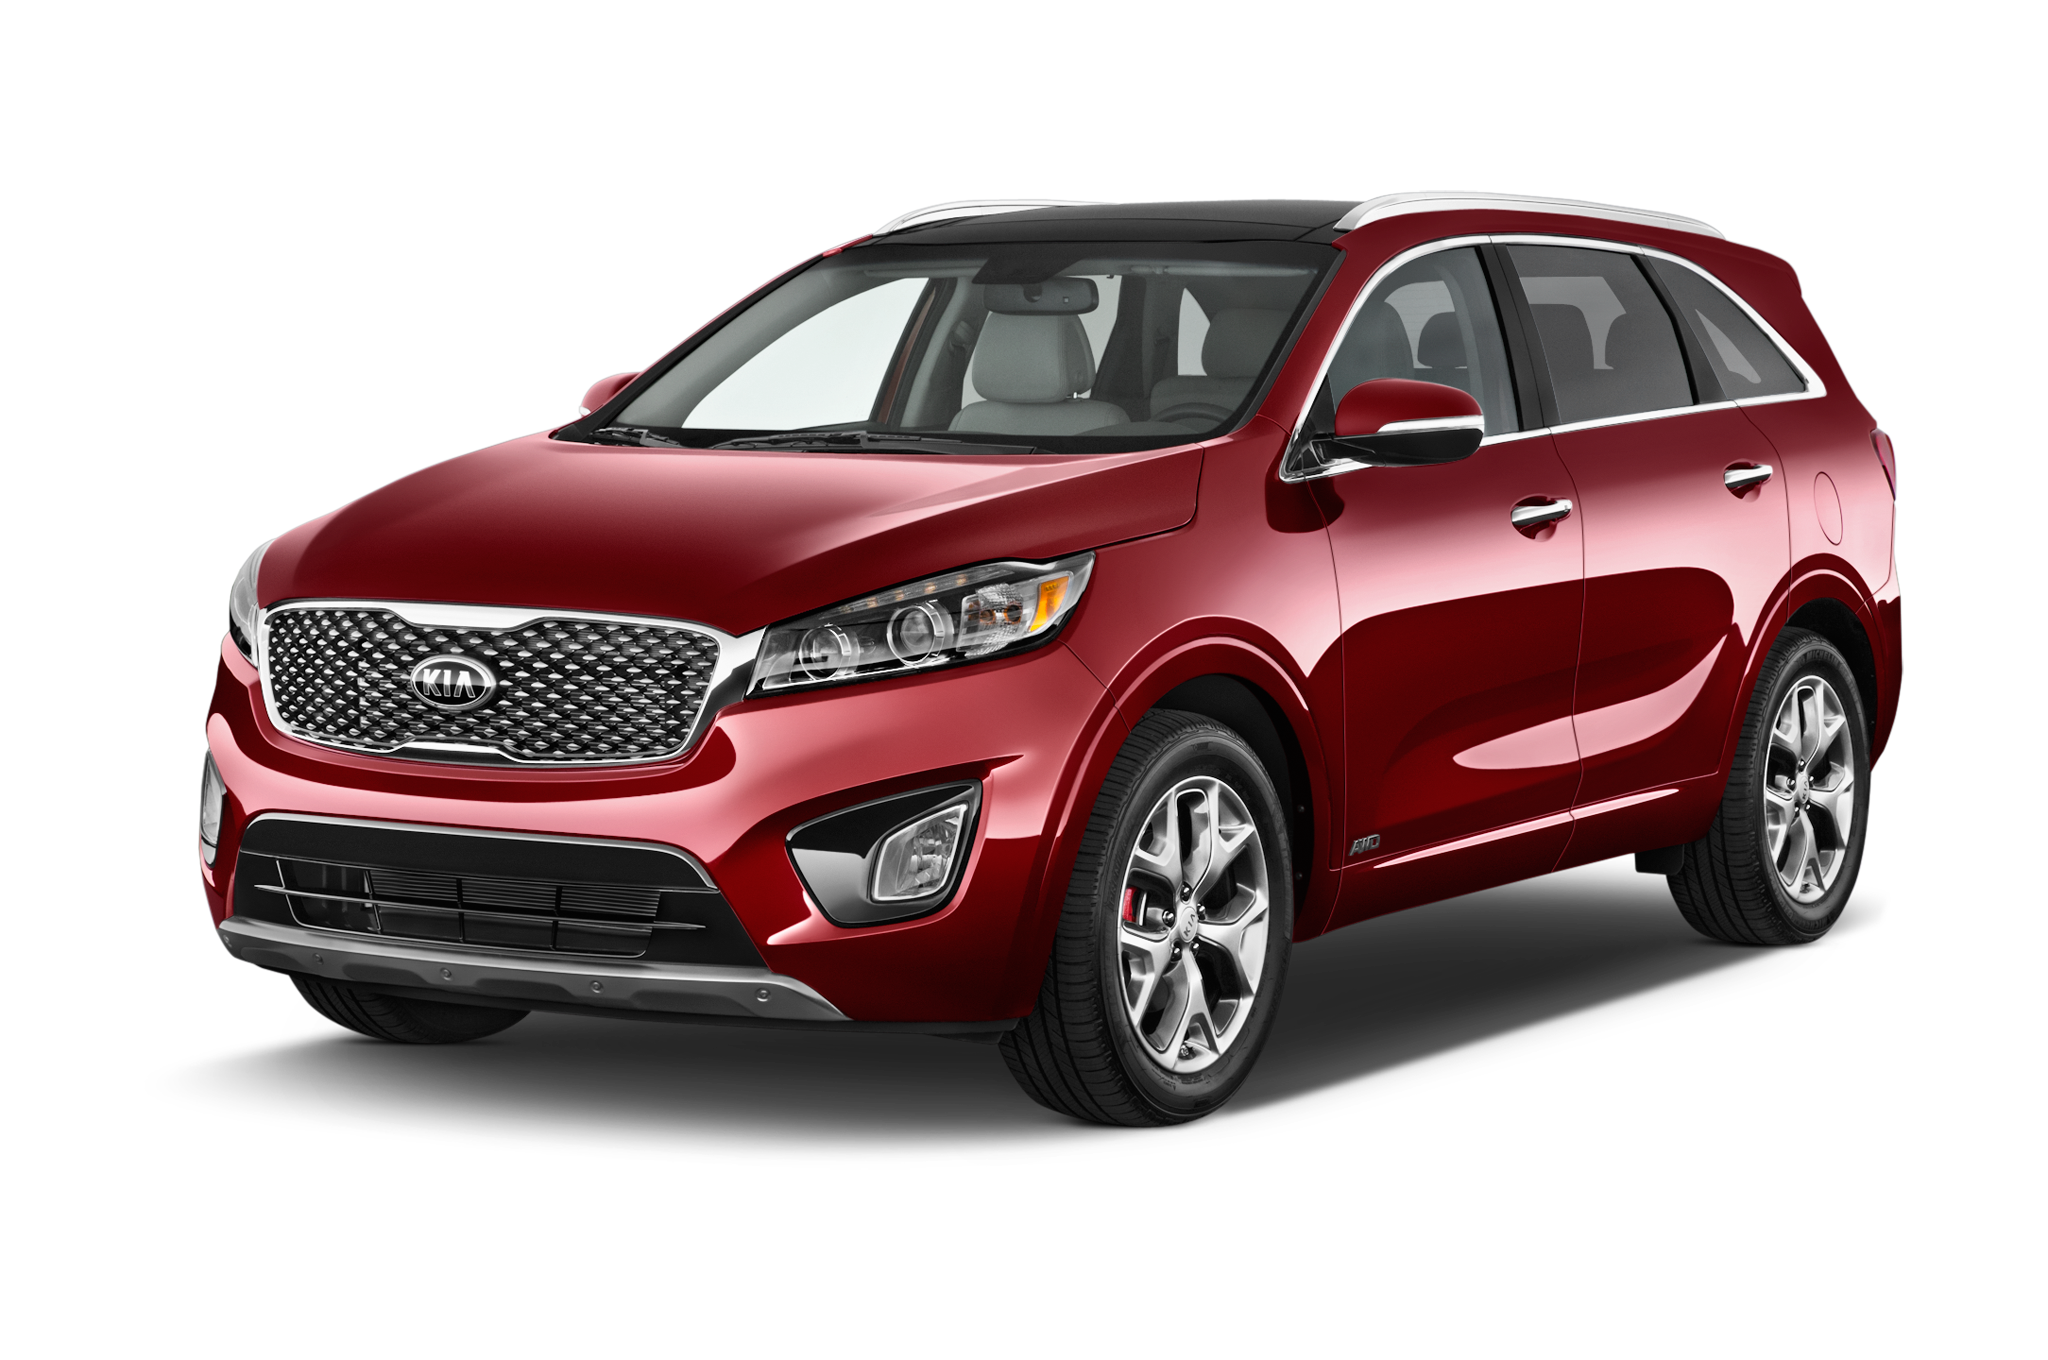 Kia Mohave (Borrego) I Restyling 2016 - now SUV 5 door #4